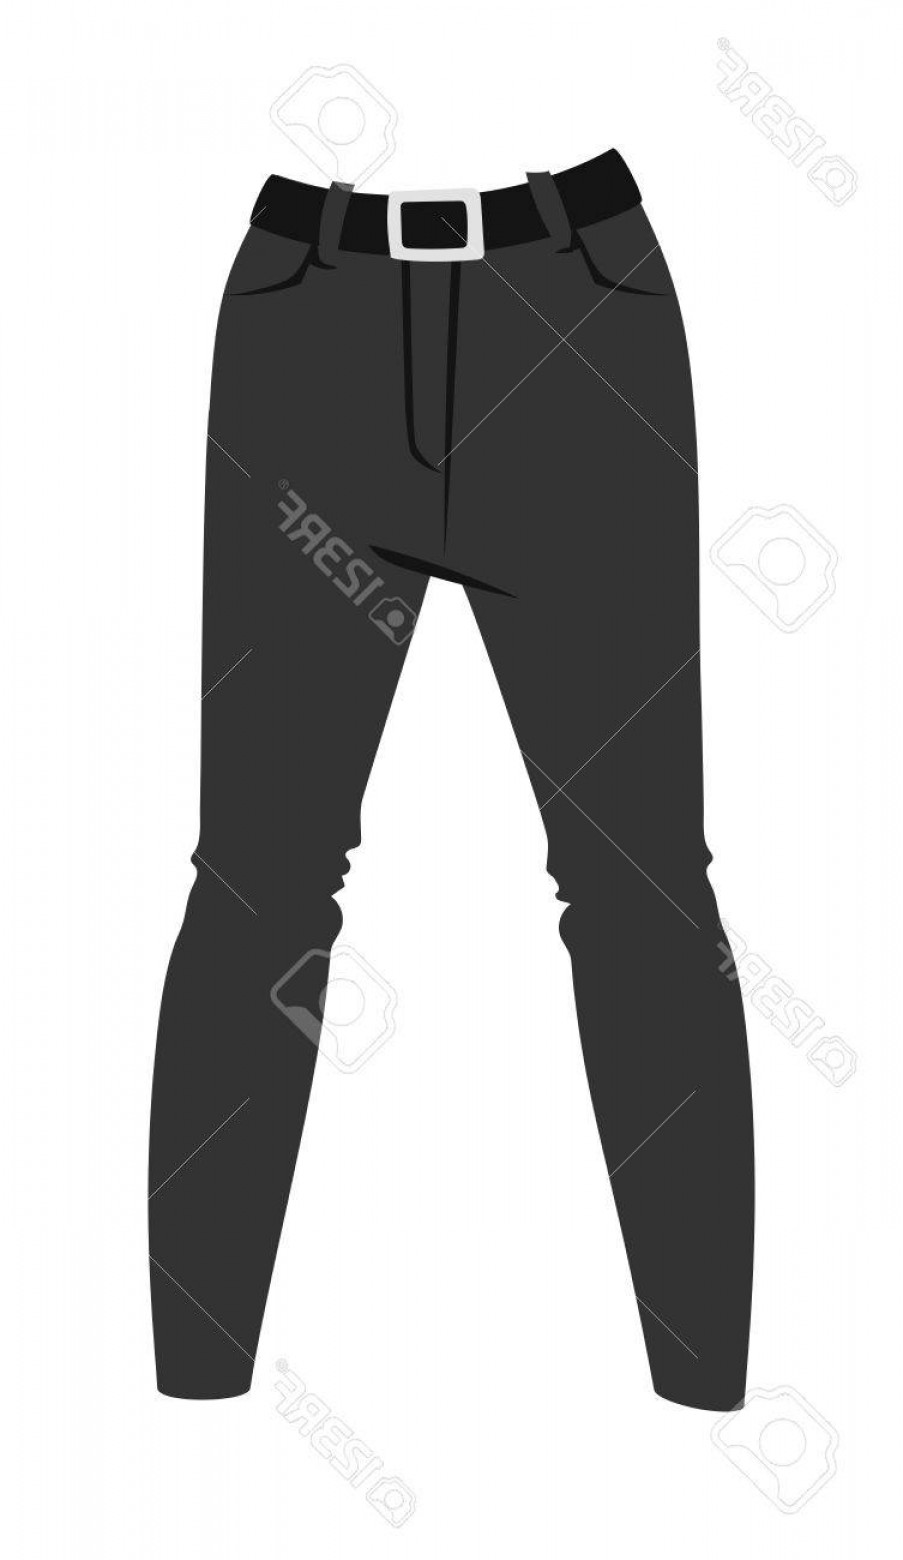 Vector Black Jeans: Photostock Vector Cartoon Jeans Trousers Details Silhouettes Of Denim Menswear Black Jeans On White Jeans Casual Isola